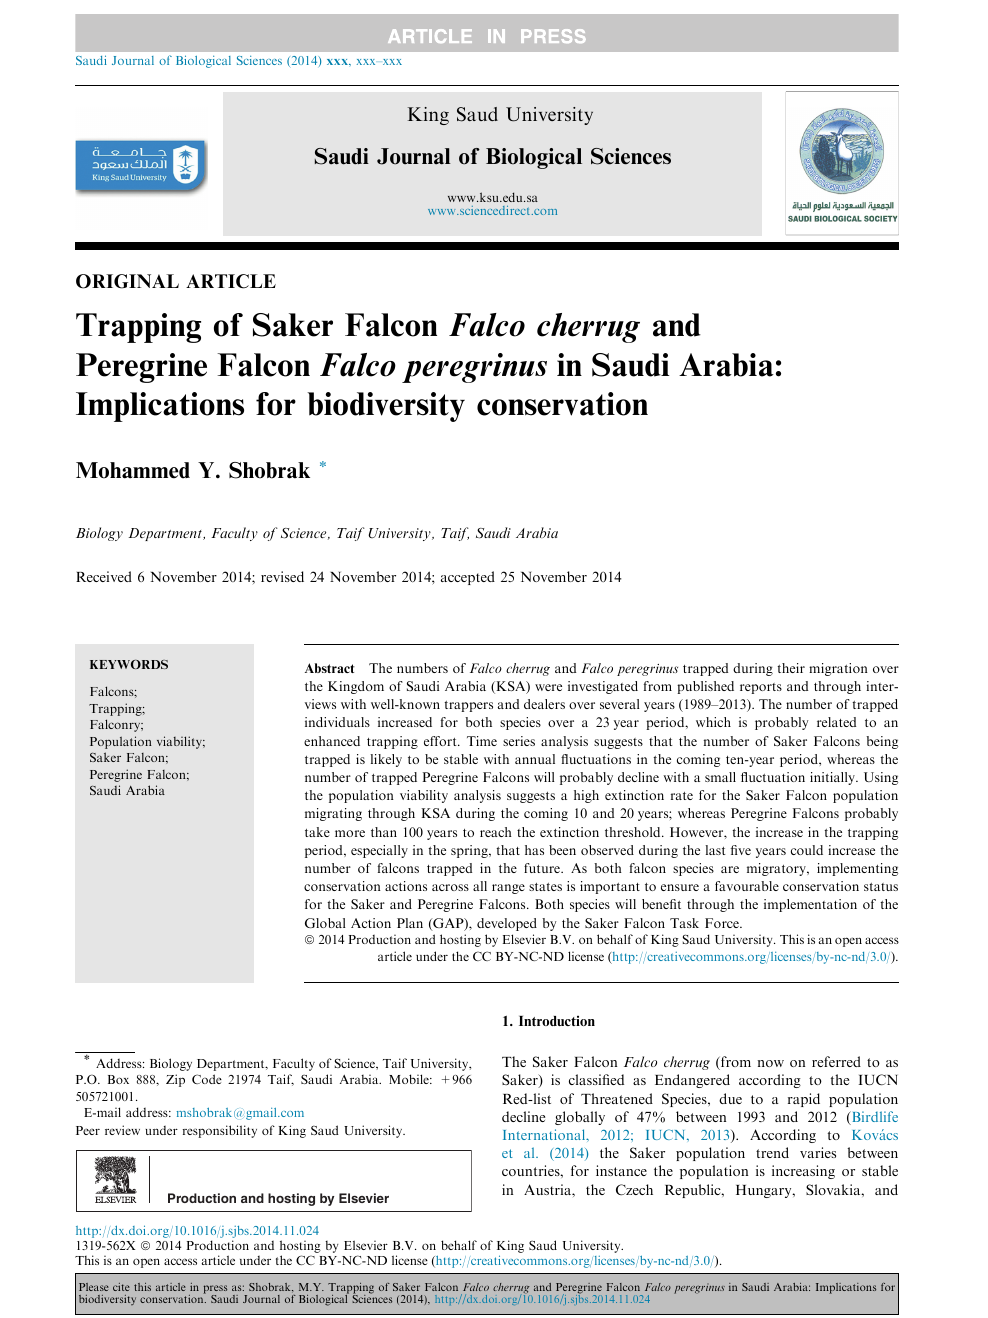 Trapping Of Saker Falcon Falco Cherrug And Peregrine Falcon Falco Peregrinus In Saudi Arabia Implications For Biodiversity Conservation Topic Of Research Paper In History And Archaeology Download Scholarly Article Pdf And